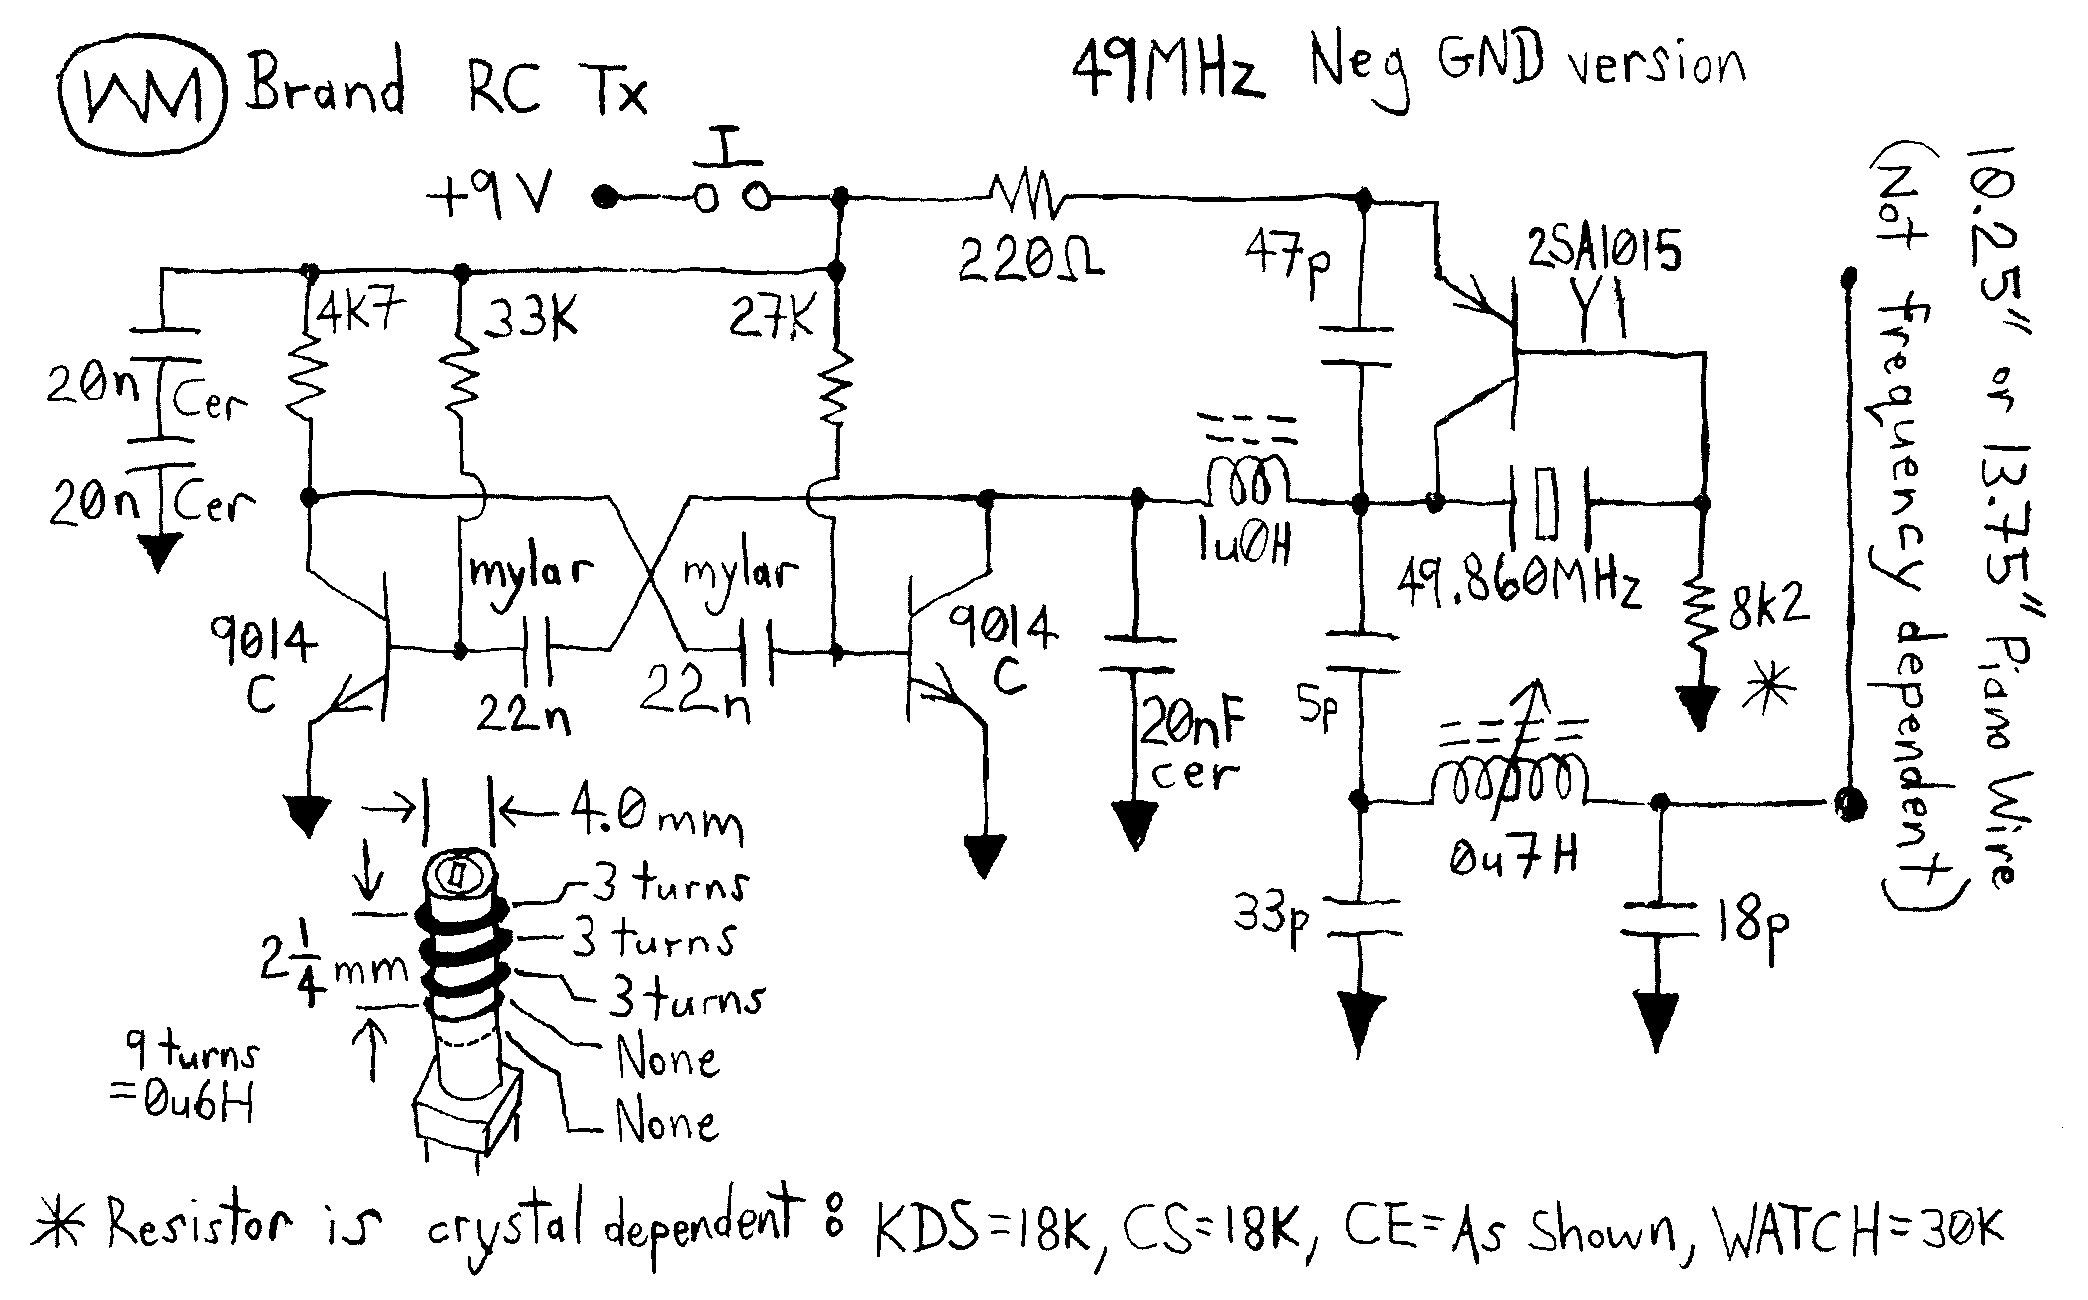 Rc Car Receiver Wiring Diagram Circuit Zen Remote For Diagrams Remotetoycarassembly Make Controlled Toy Of